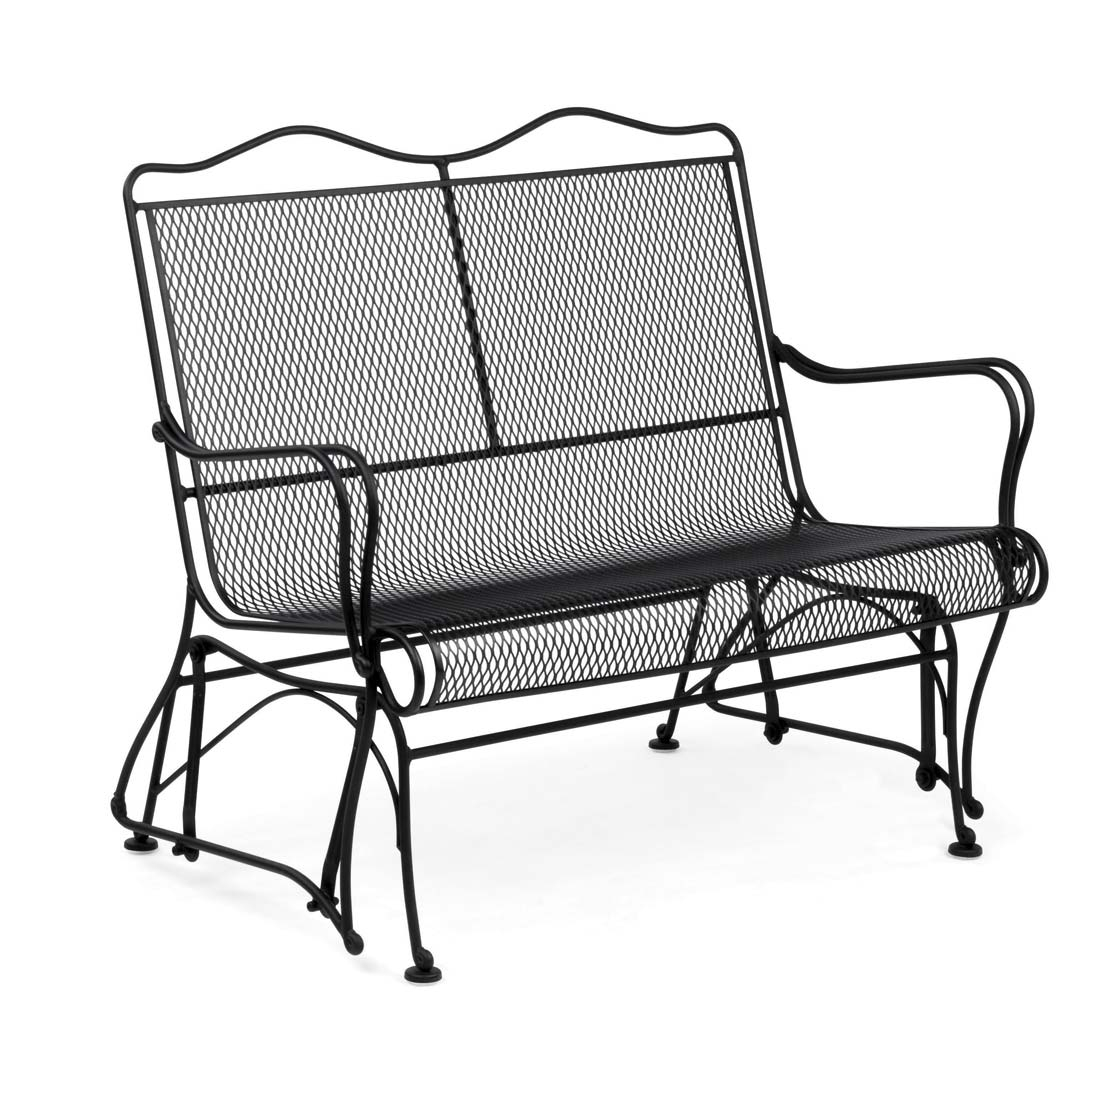 buy the tucson mesh high back gliding chair for your outdoor living